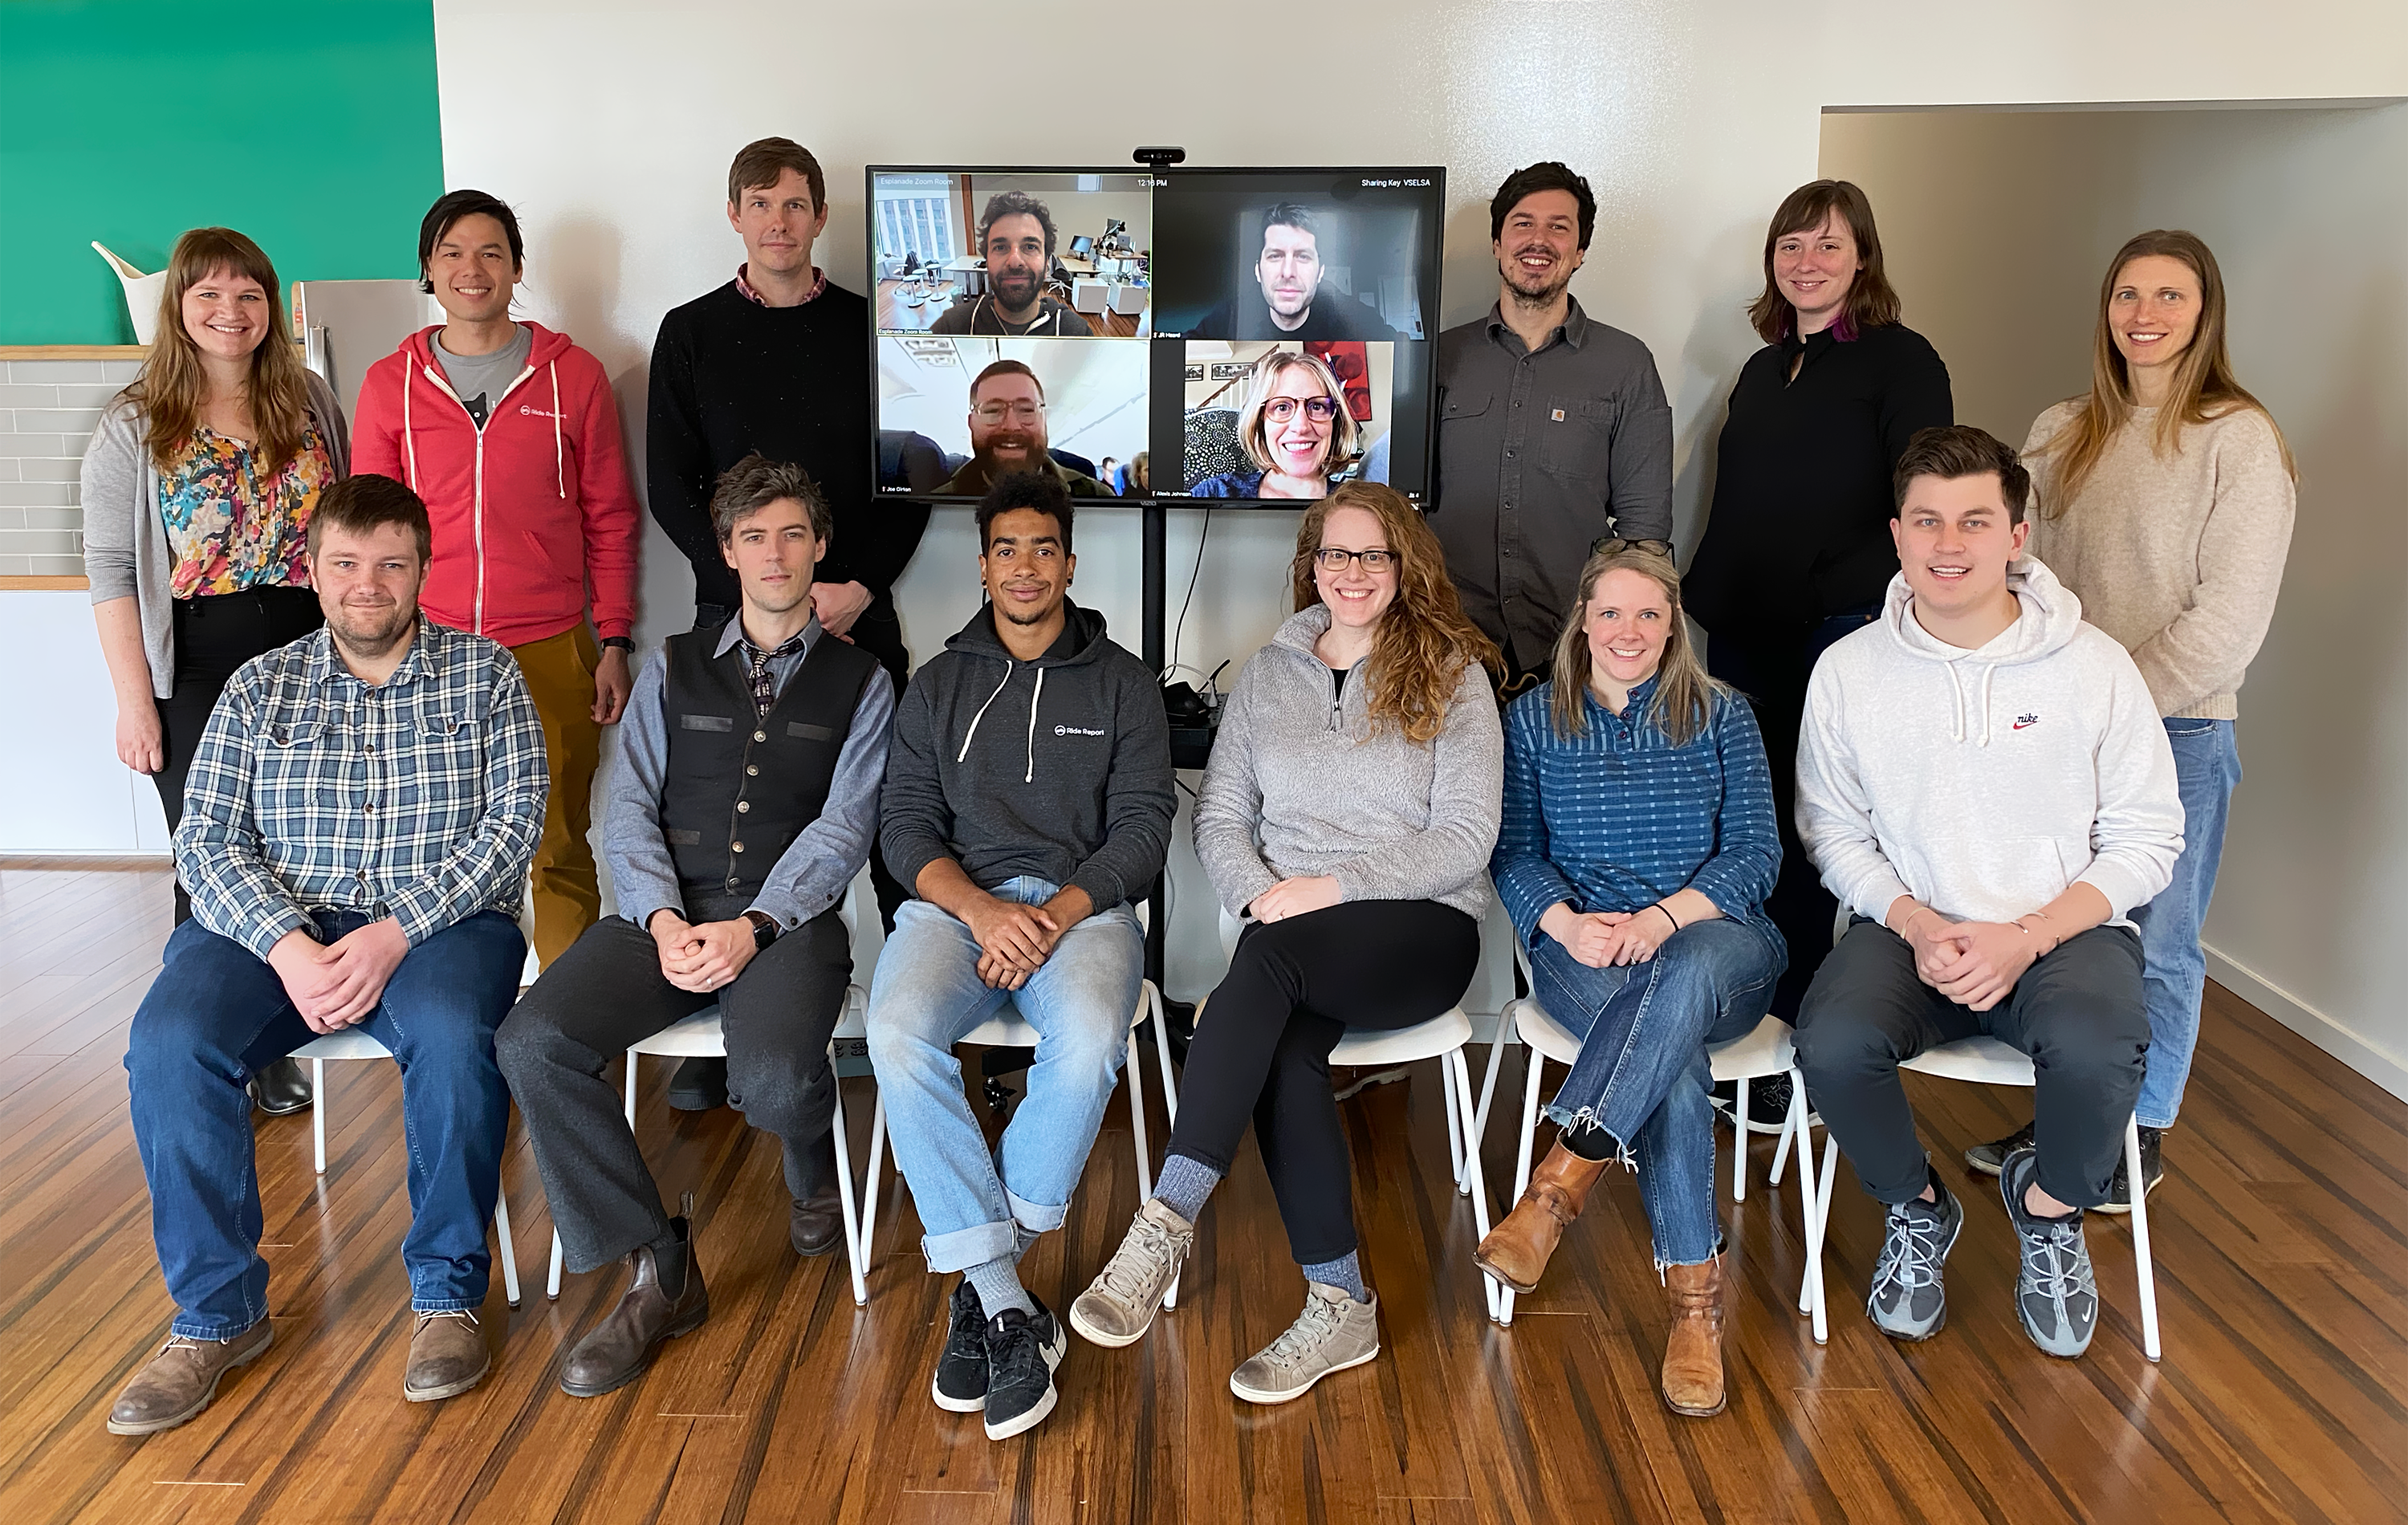 12 people in 2 rows, the first row sitting on chairs, the second row standing around a flat television screen where 4 people are pictured who have video conferenced in